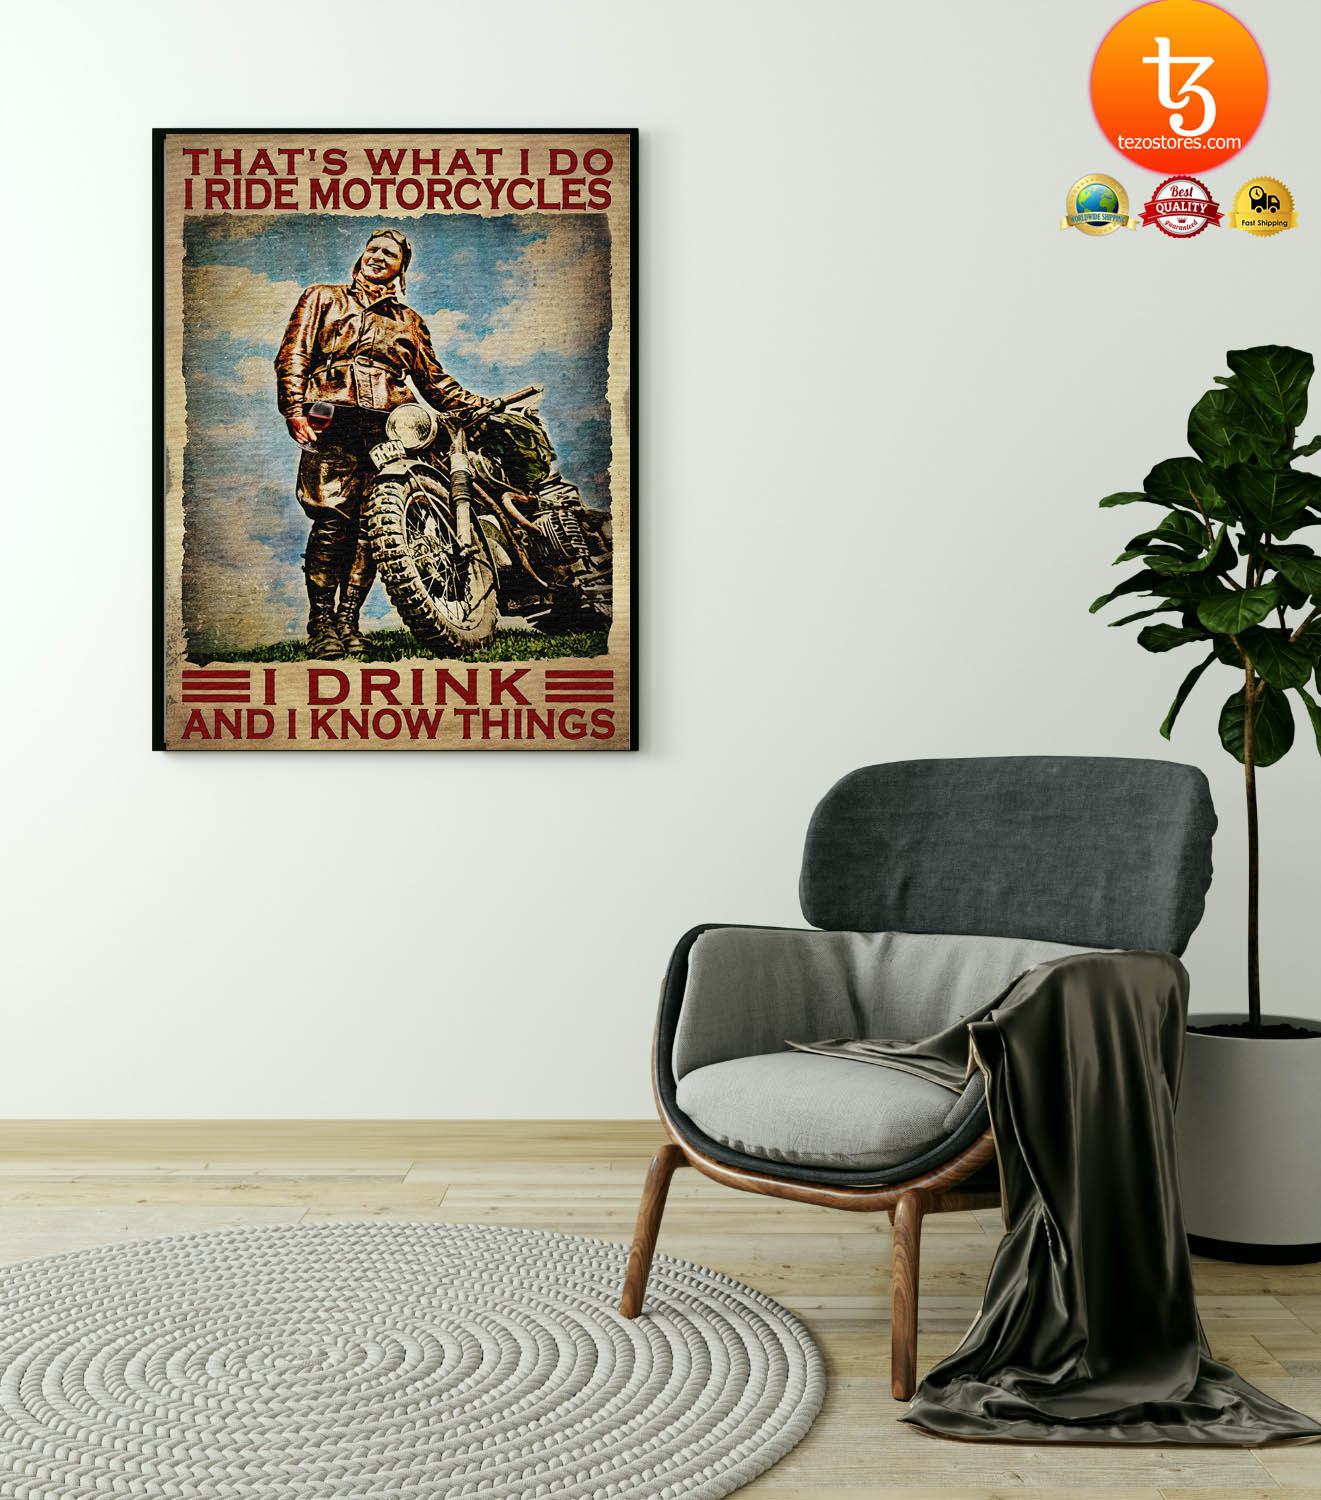 Thats what I do I ride motorcycles I drink and I know things poster1